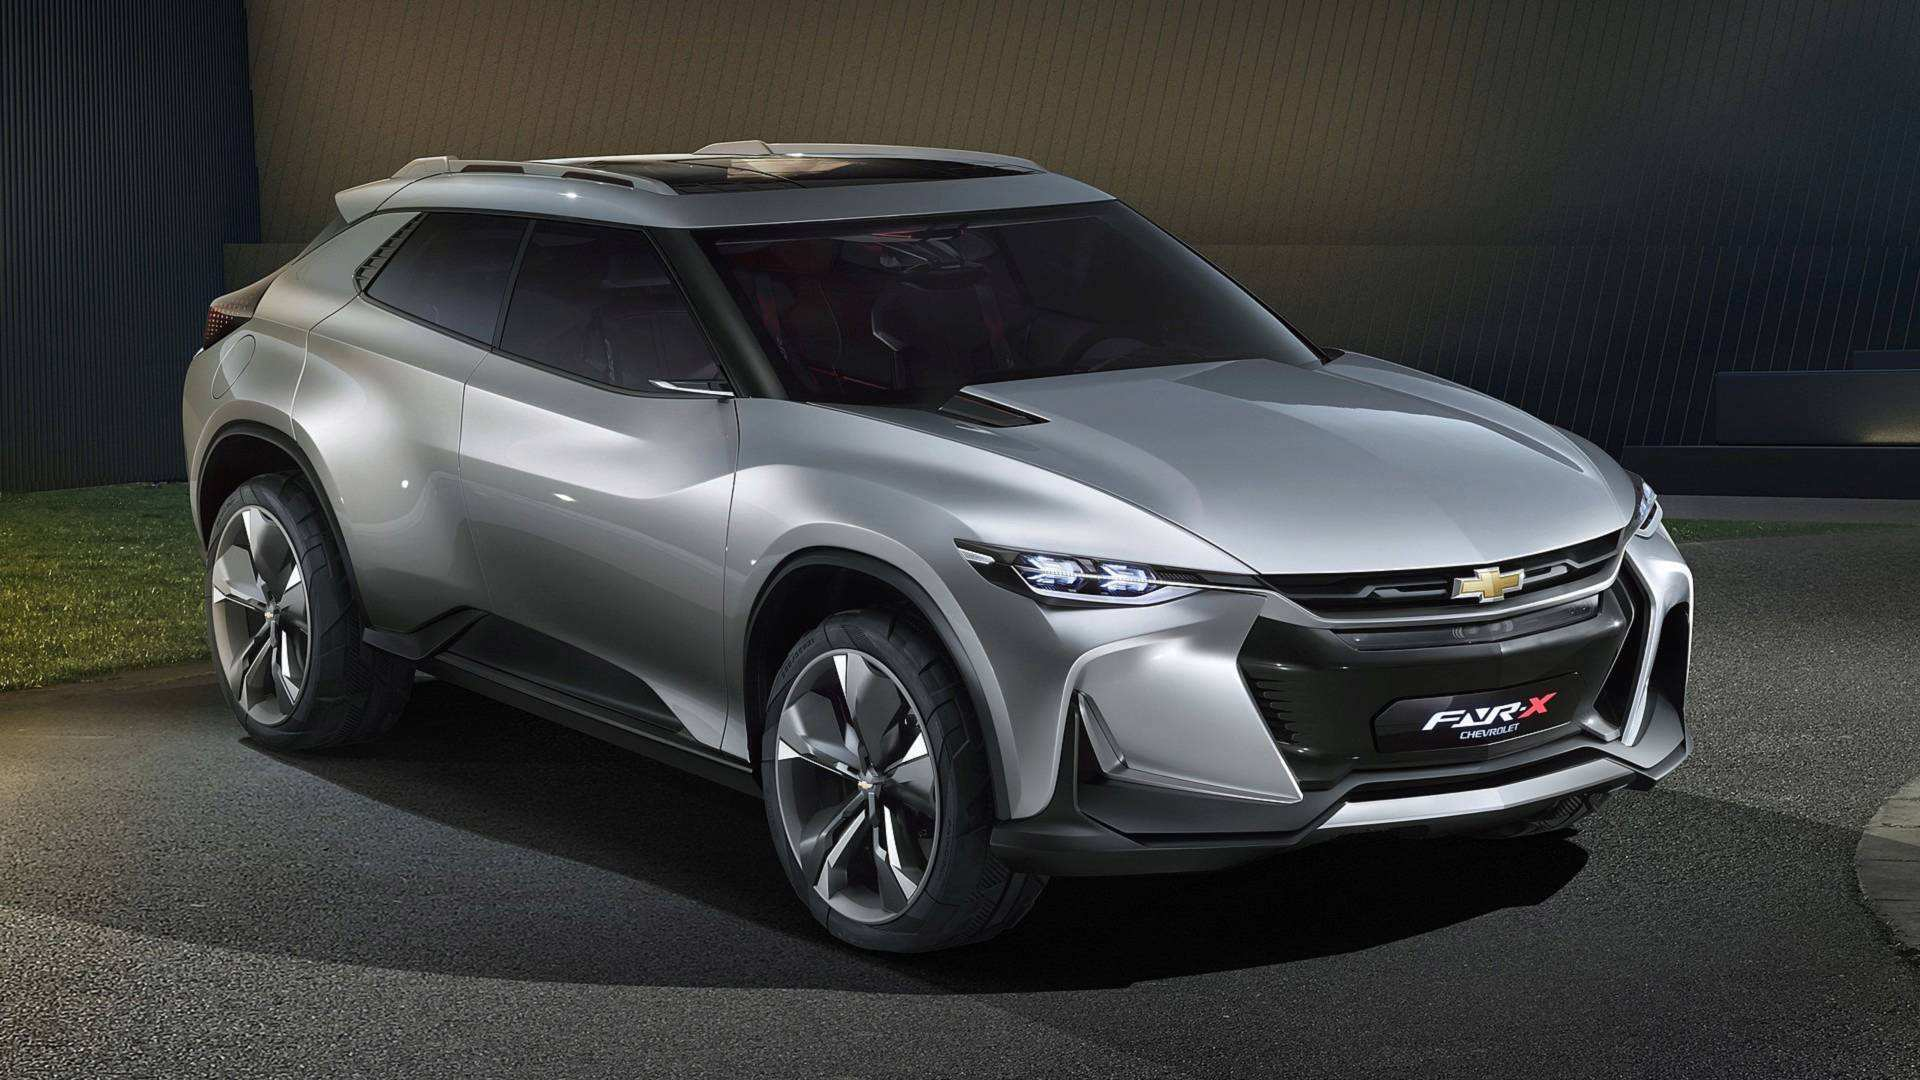 21 New Chevrolet Vehicles 2020 Picture for Chevrolet Vehicles 2020